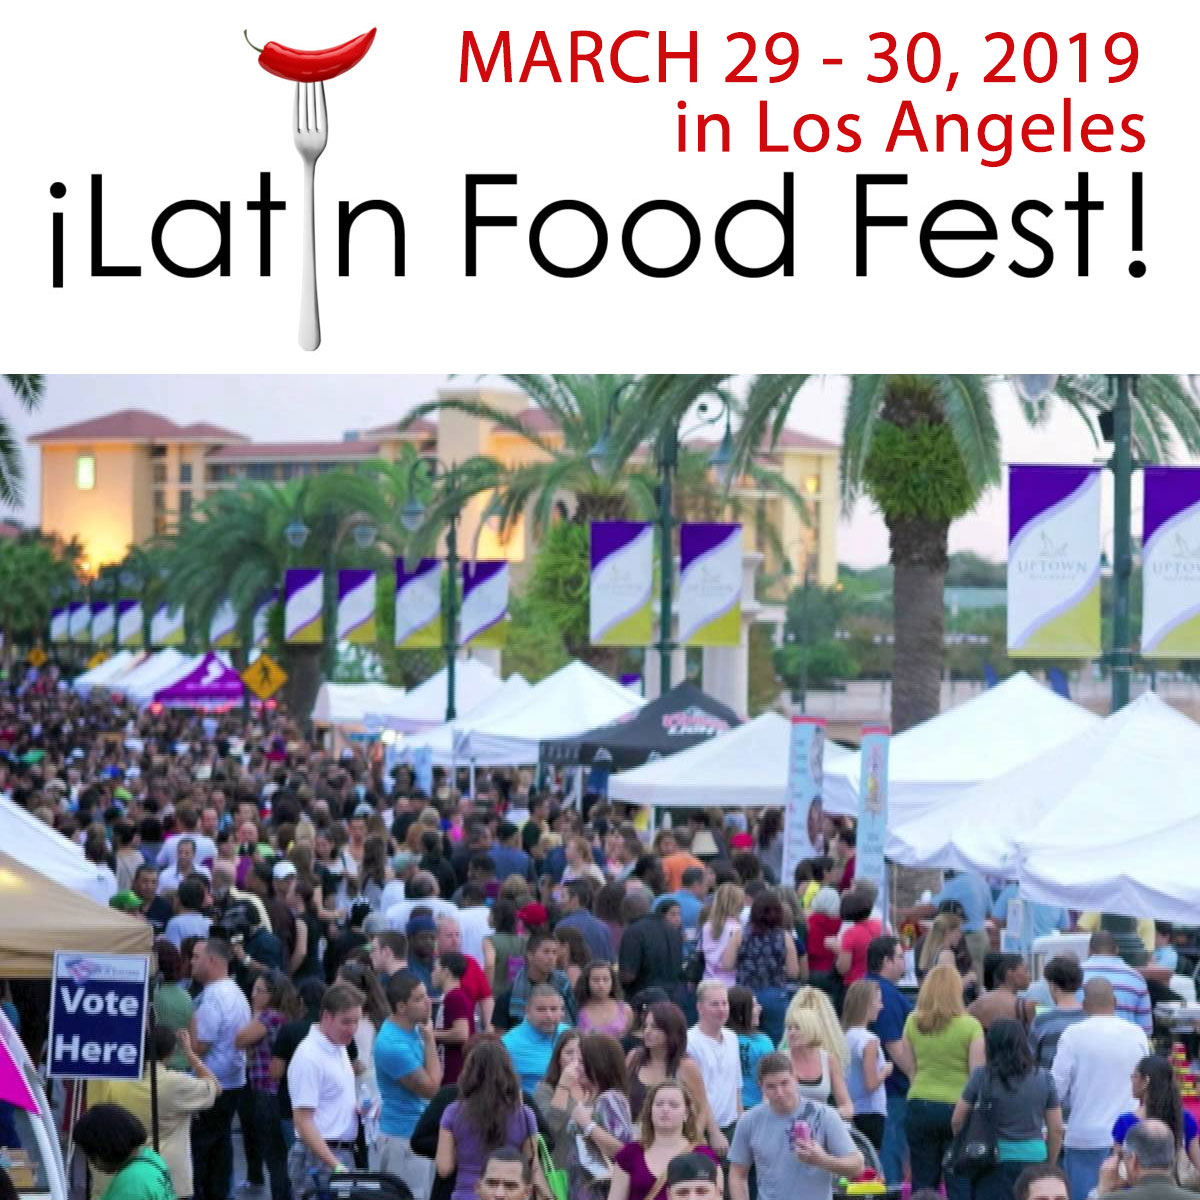 :atom Food Fest in Los Angeles